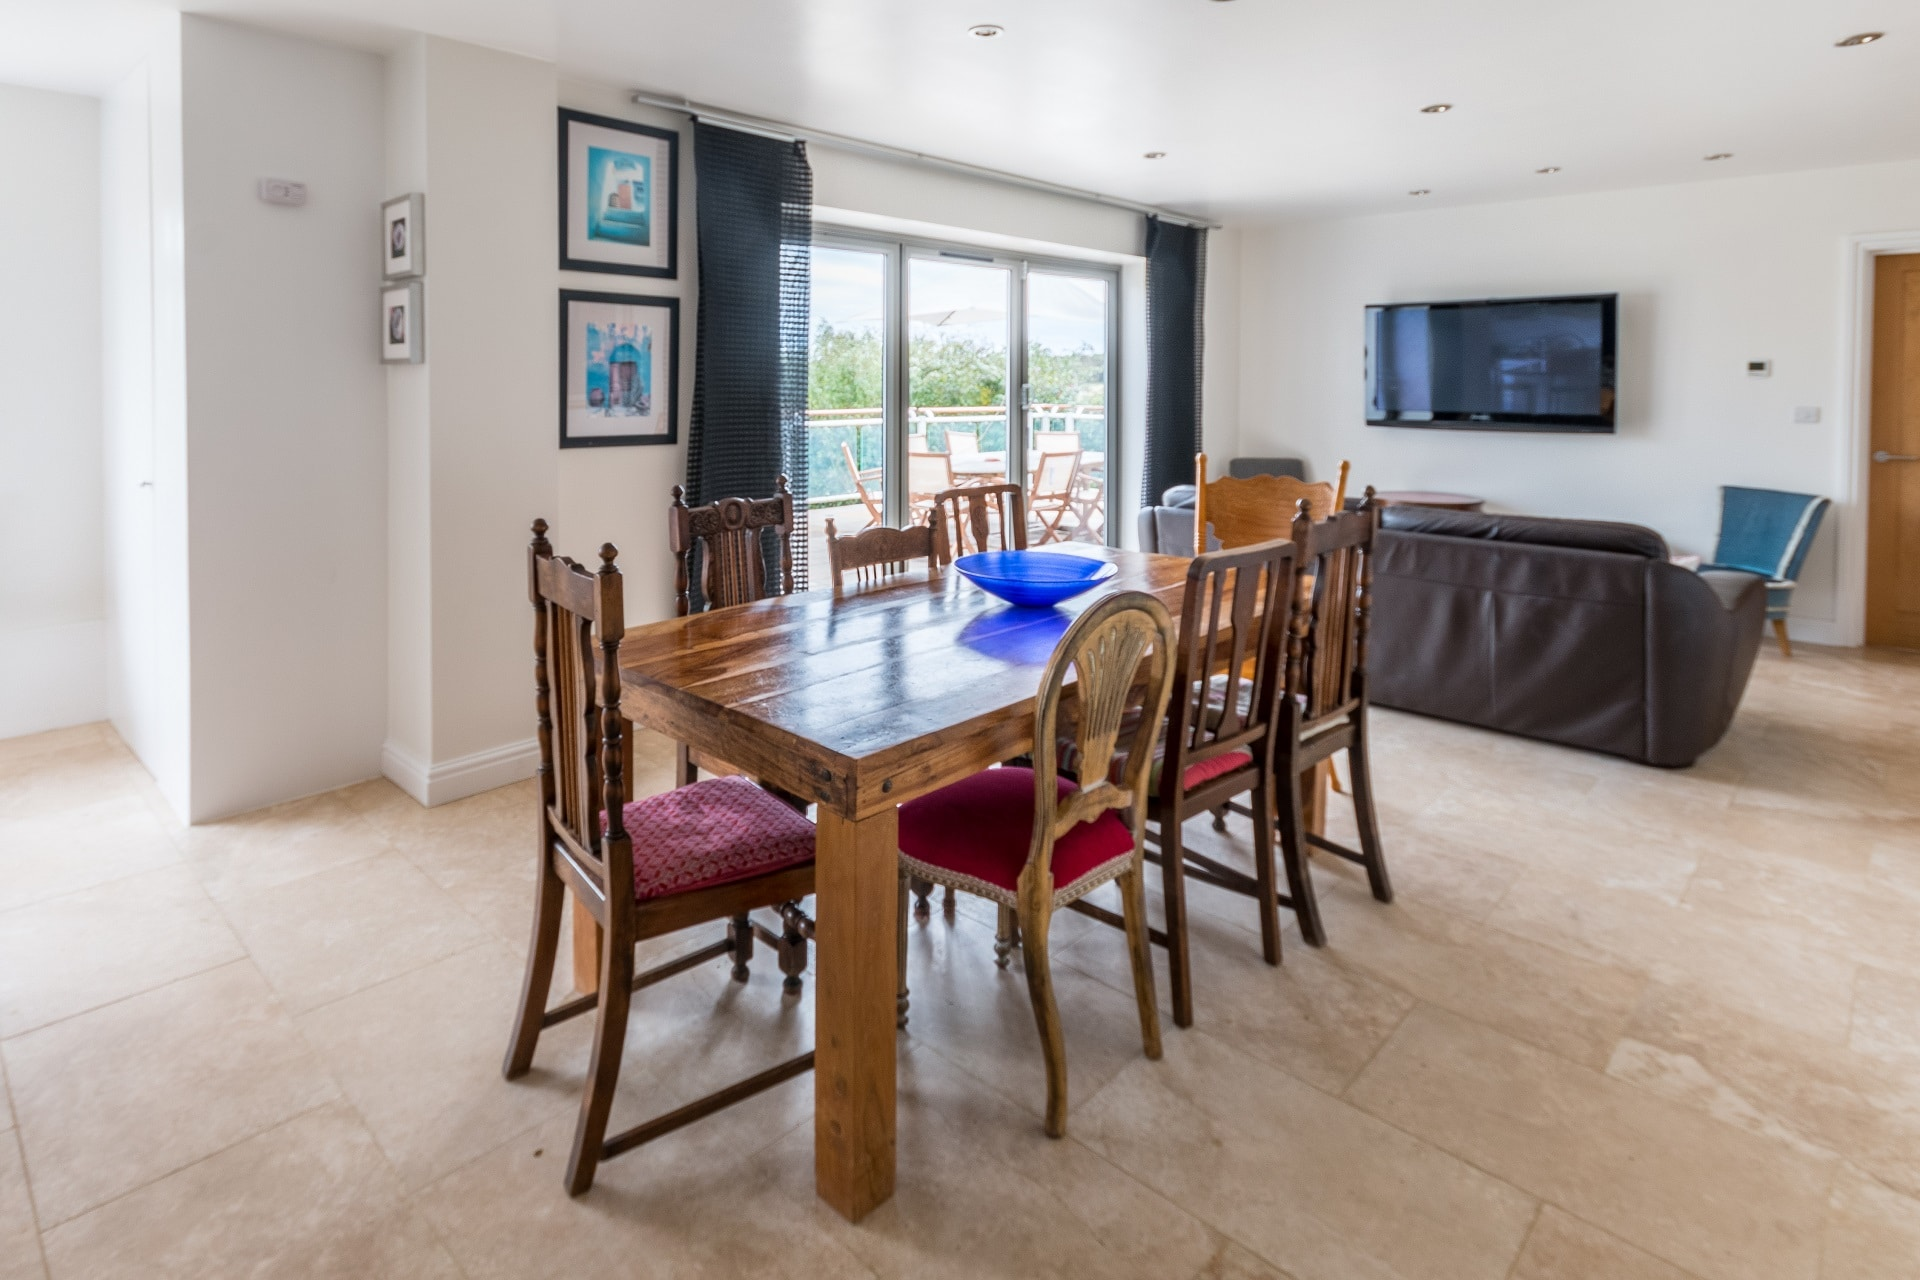 luxury dorset holiday cottage dining table